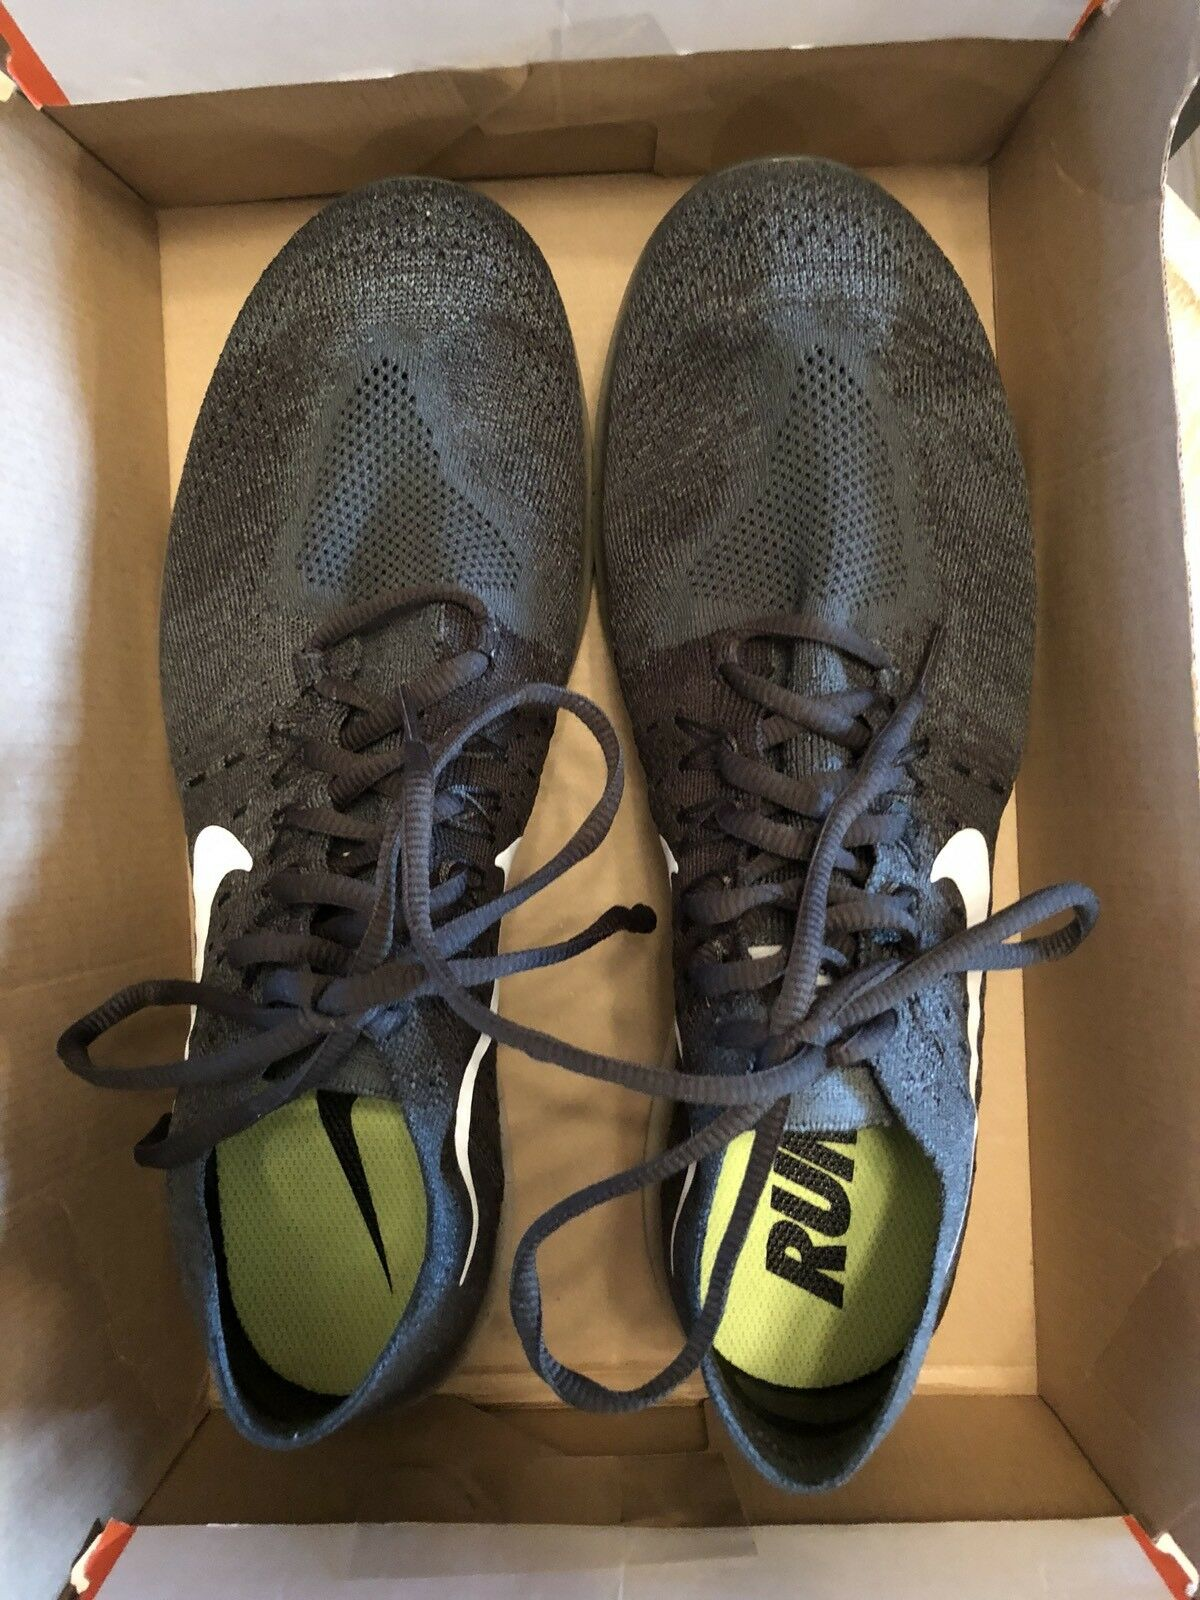 New Nike Free Run Flyknit 2017 Vintage Green/Platinum Mens Running Shoes Size 11